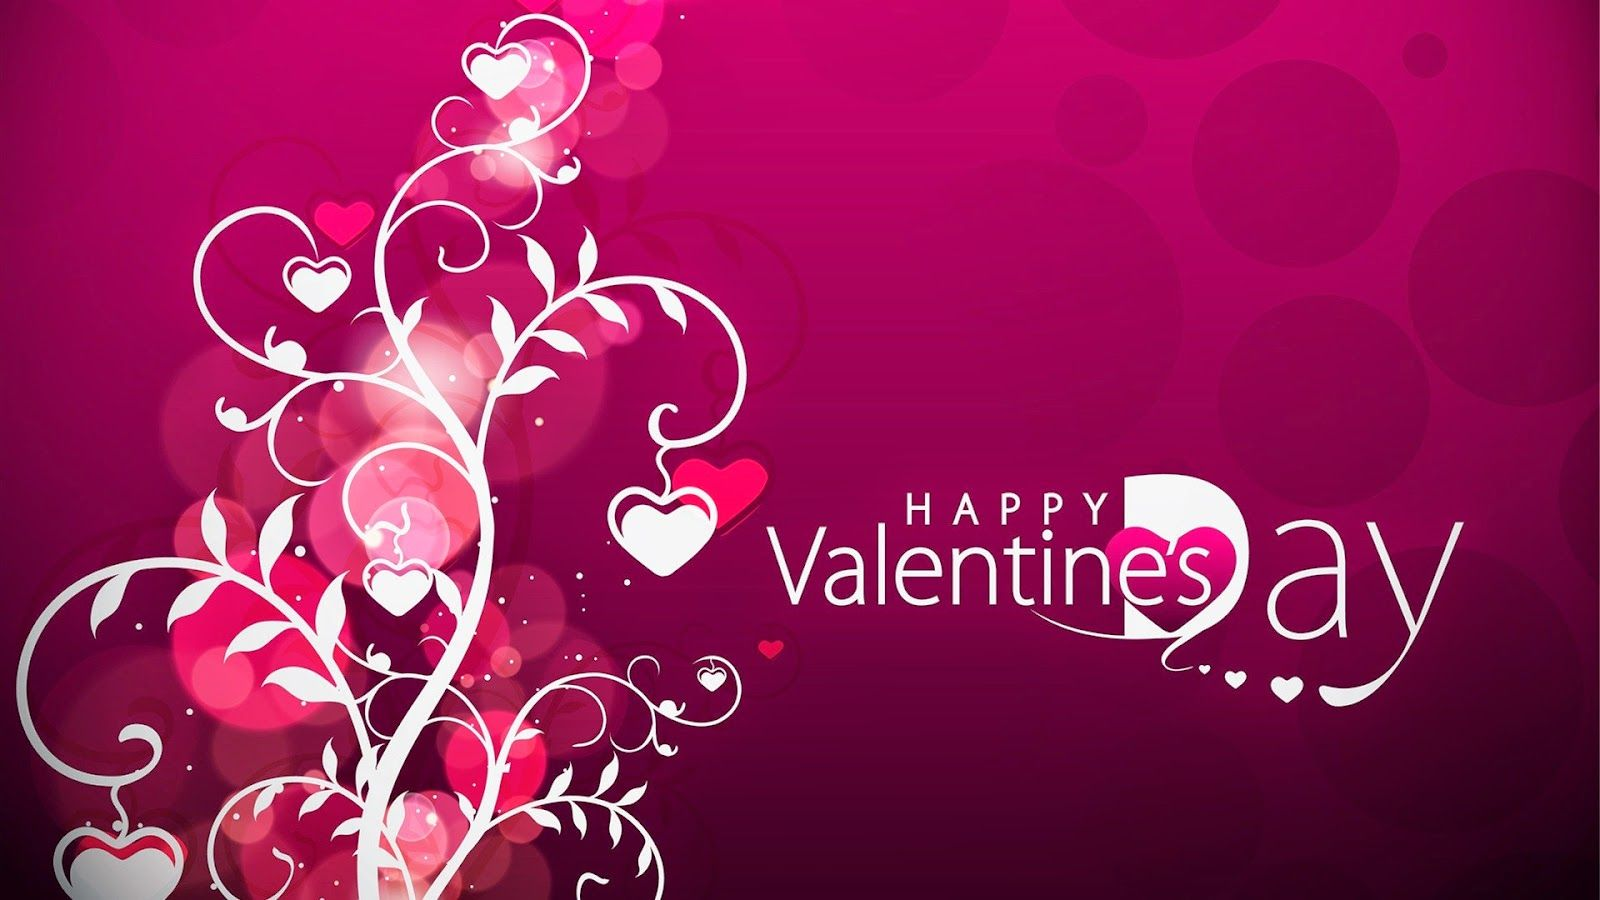 15 New Valentine S Day Desktop Wallpapers For 2015 Hearts